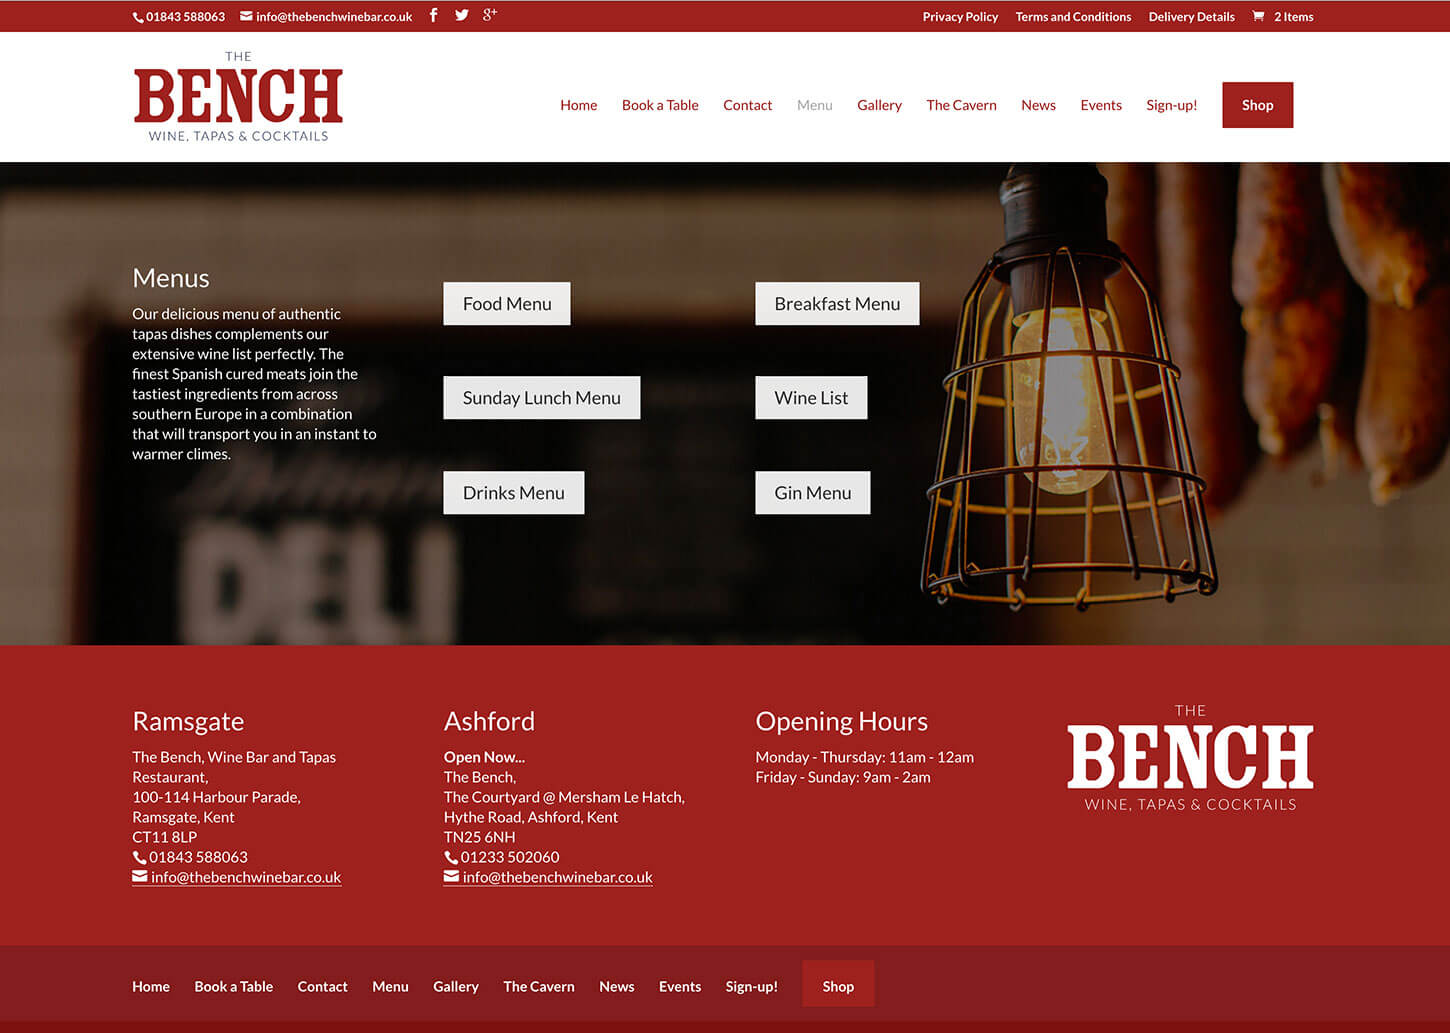 The Bench Restaurant website design - Menu page